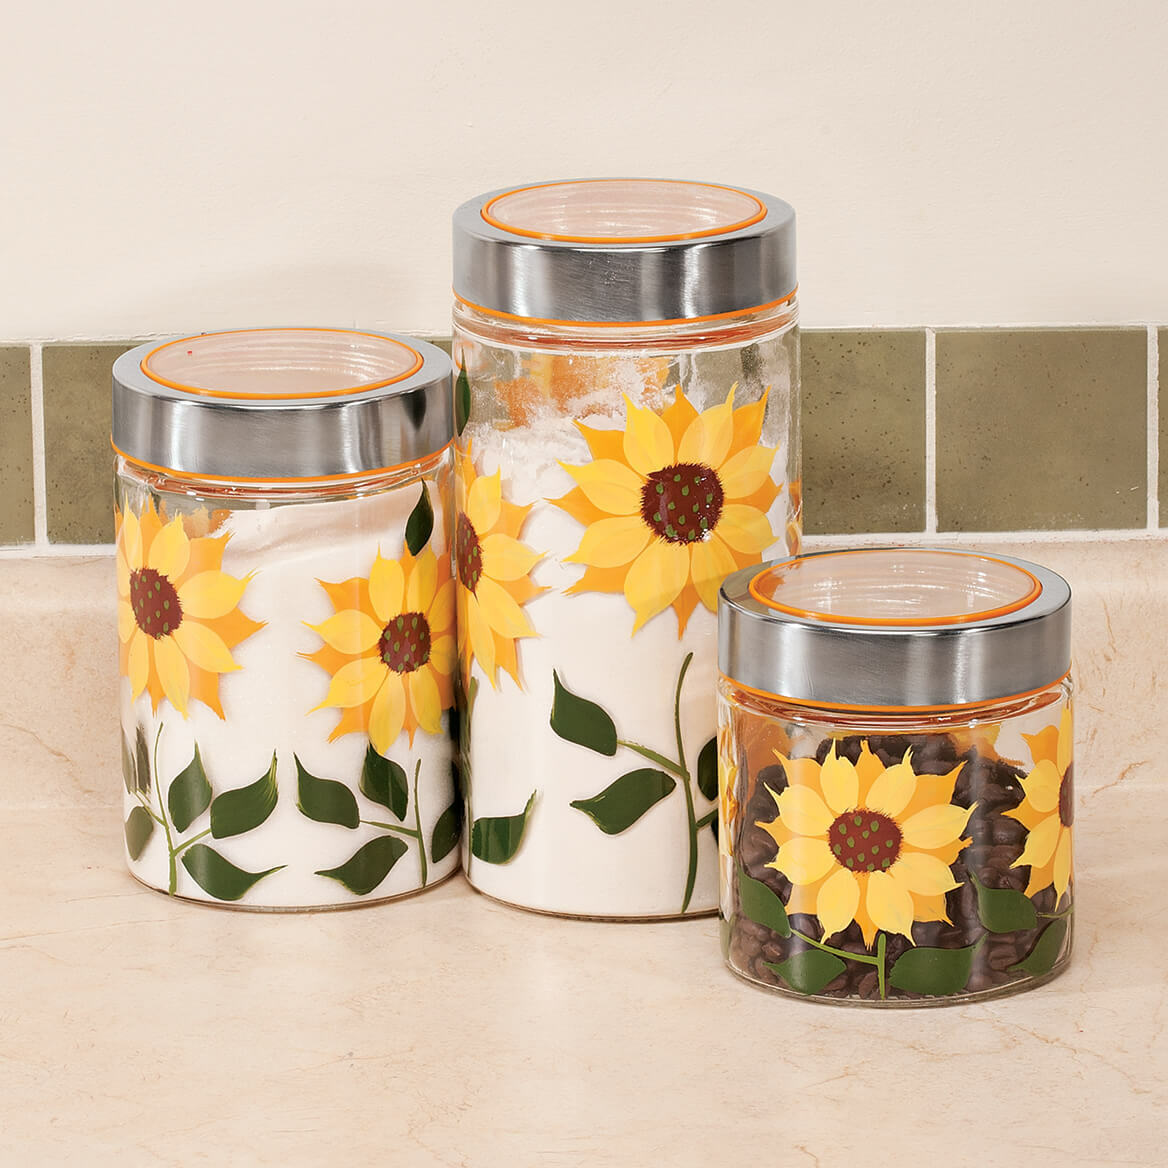 NEW Sunflower Canisters, Set of 3 355808 Free Shipping